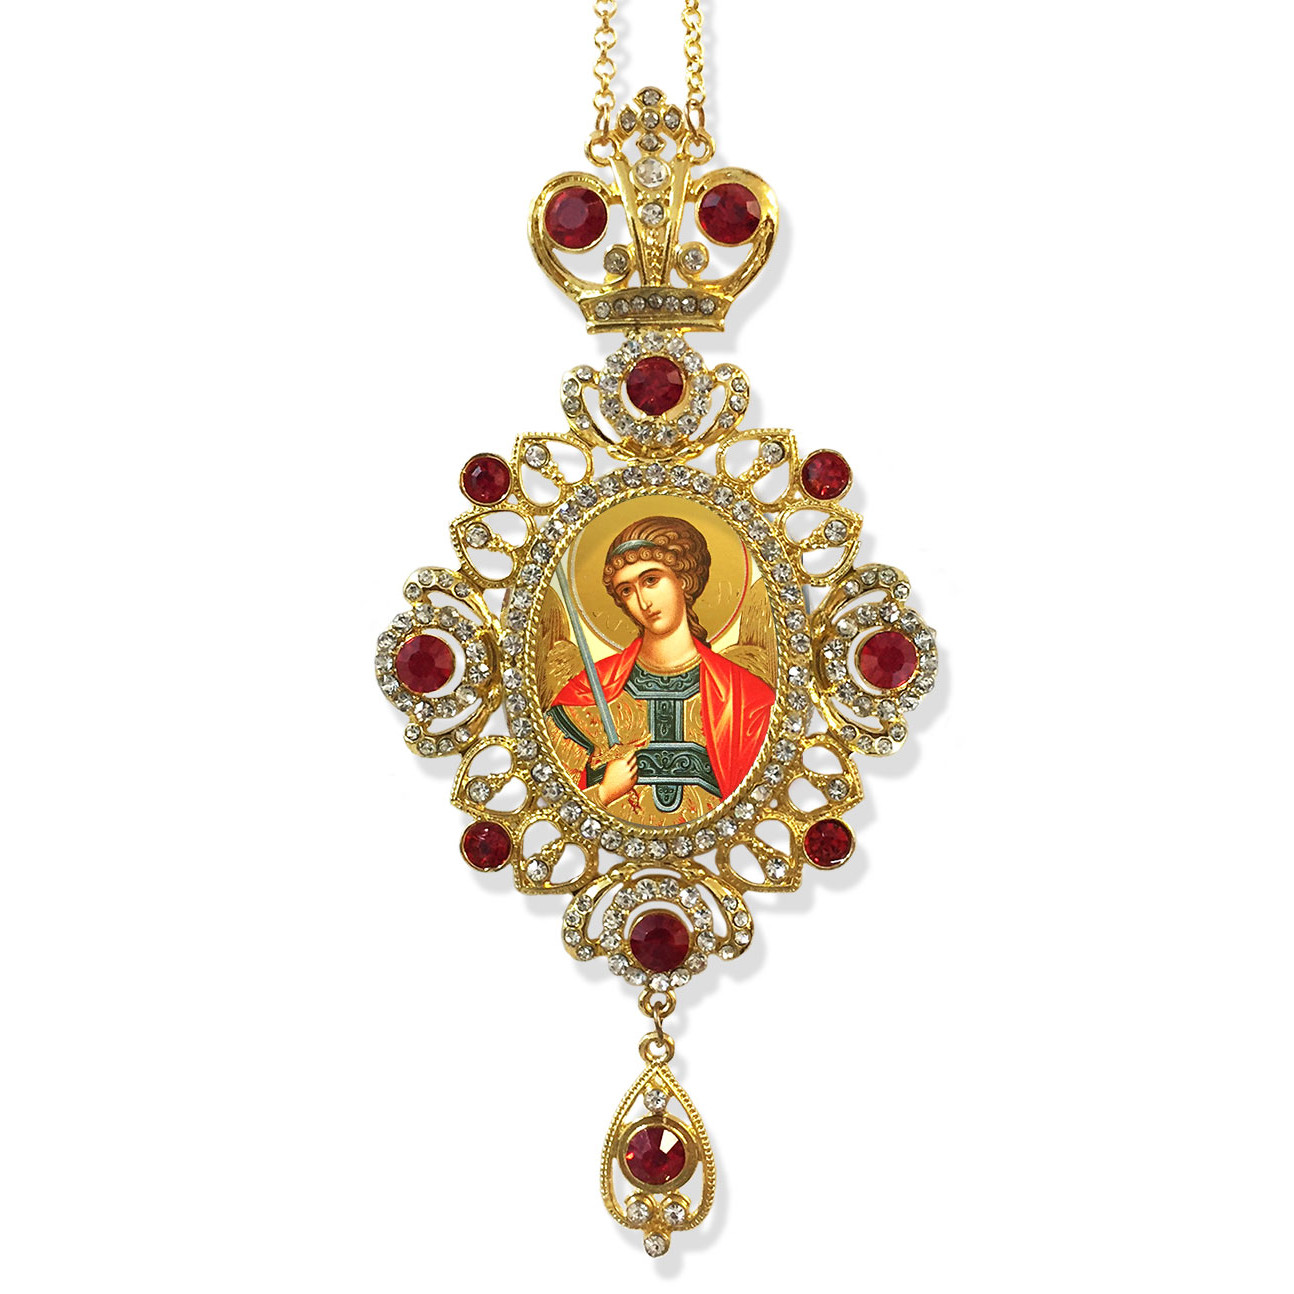 M 19 44 saint michael icon pendant with red stones religious gift m 19 44 saint michael icon pendant with red stones religious gift wall room decoration aloadofball Choice Image